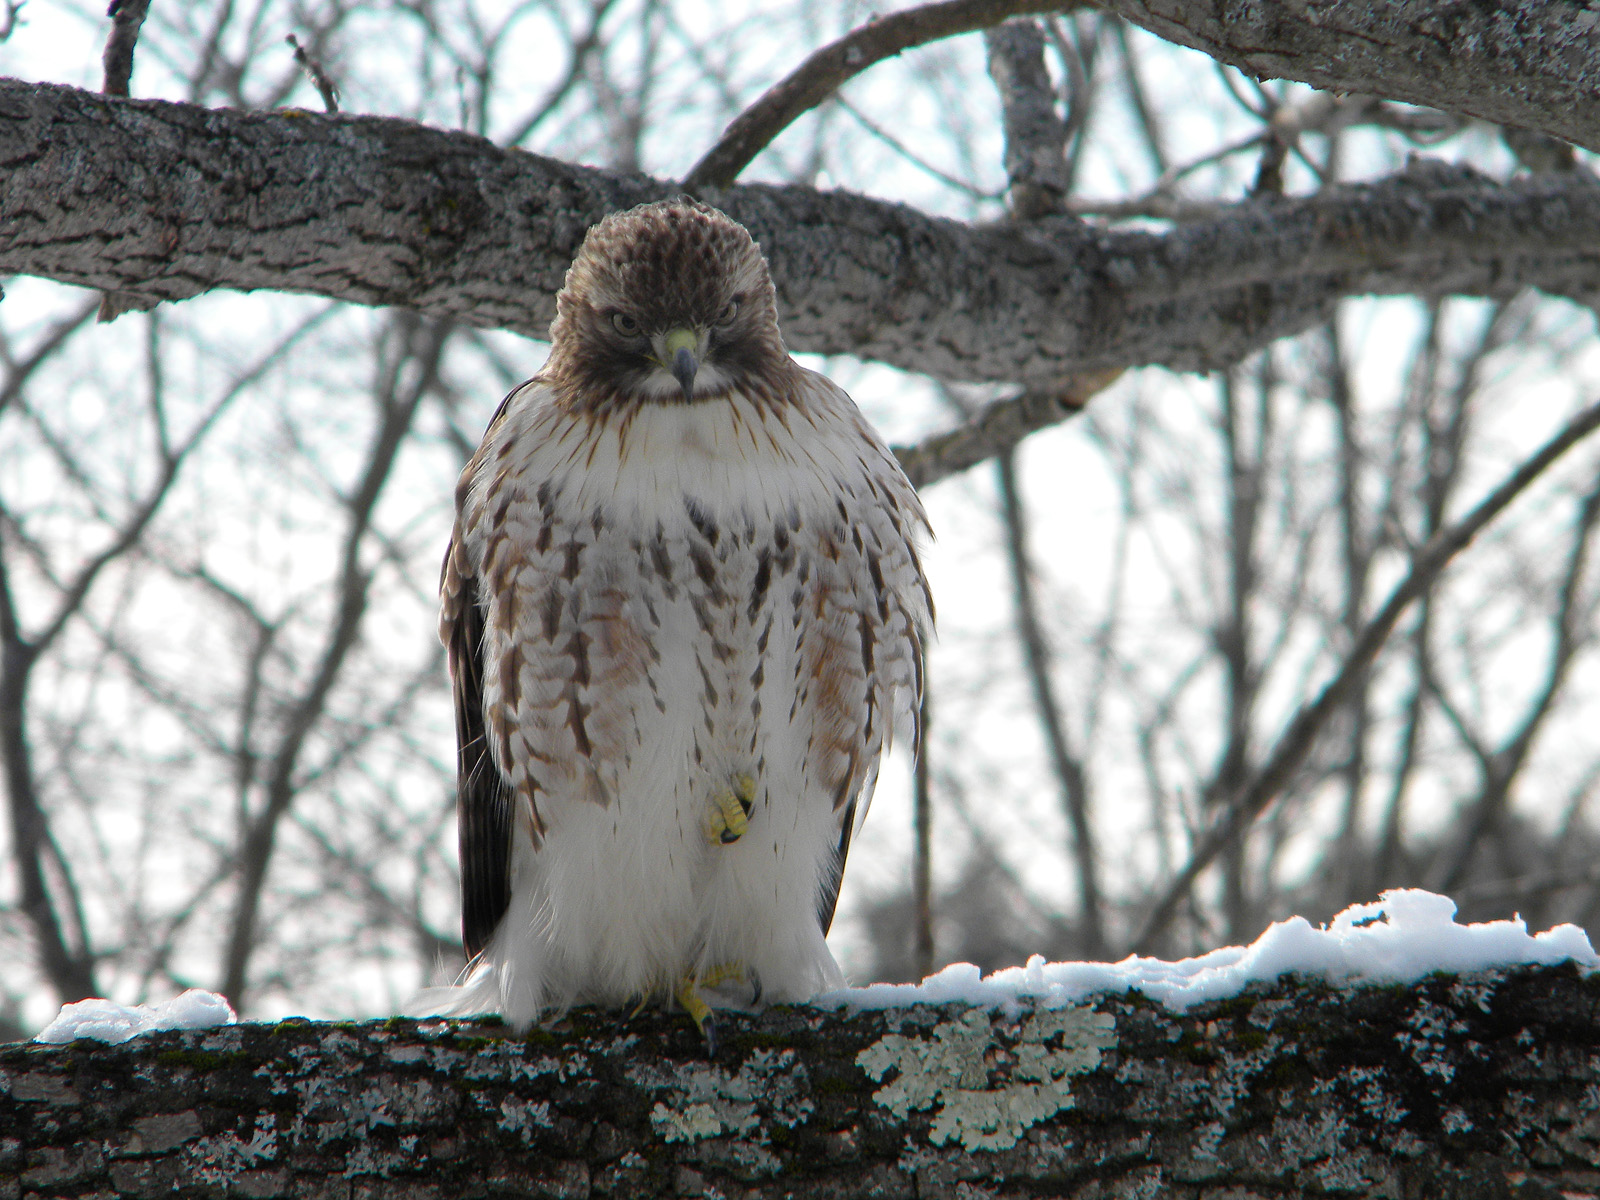 Andy Christie snapped this photo of a Red-tailed Hawk in his southern New Hampshire backyard. He titled it ÒYou want a piece of me?Ó